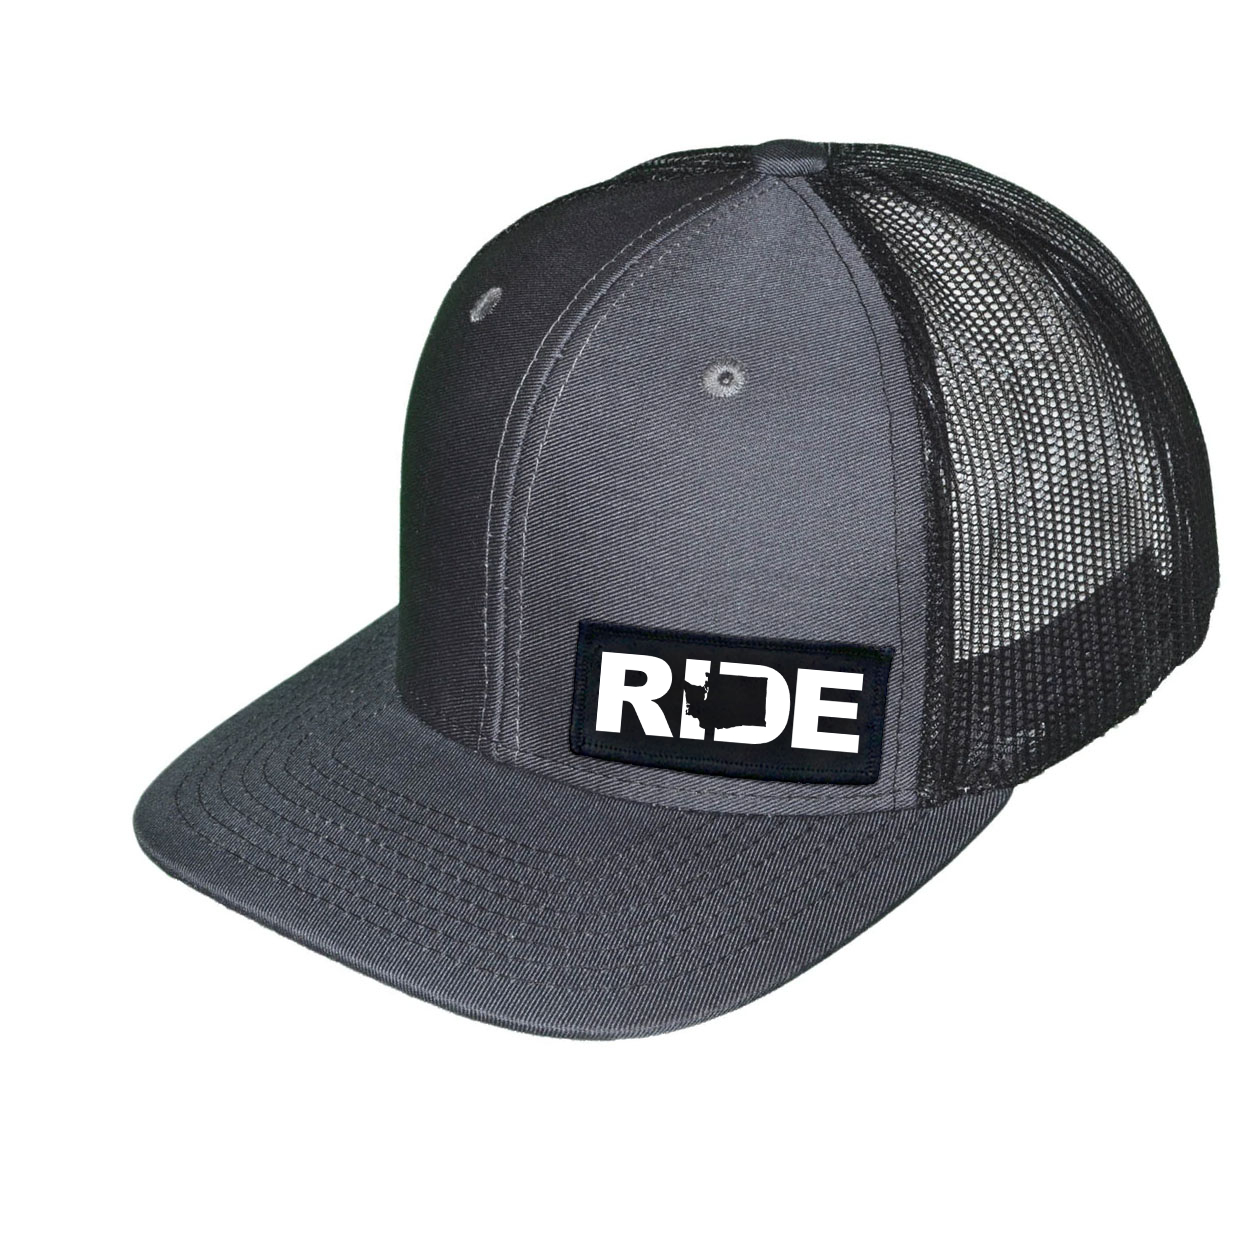 Ride Washington Night Out Woven Patch Snapback Trucker Hat Dark Gray/Black (White Logo)